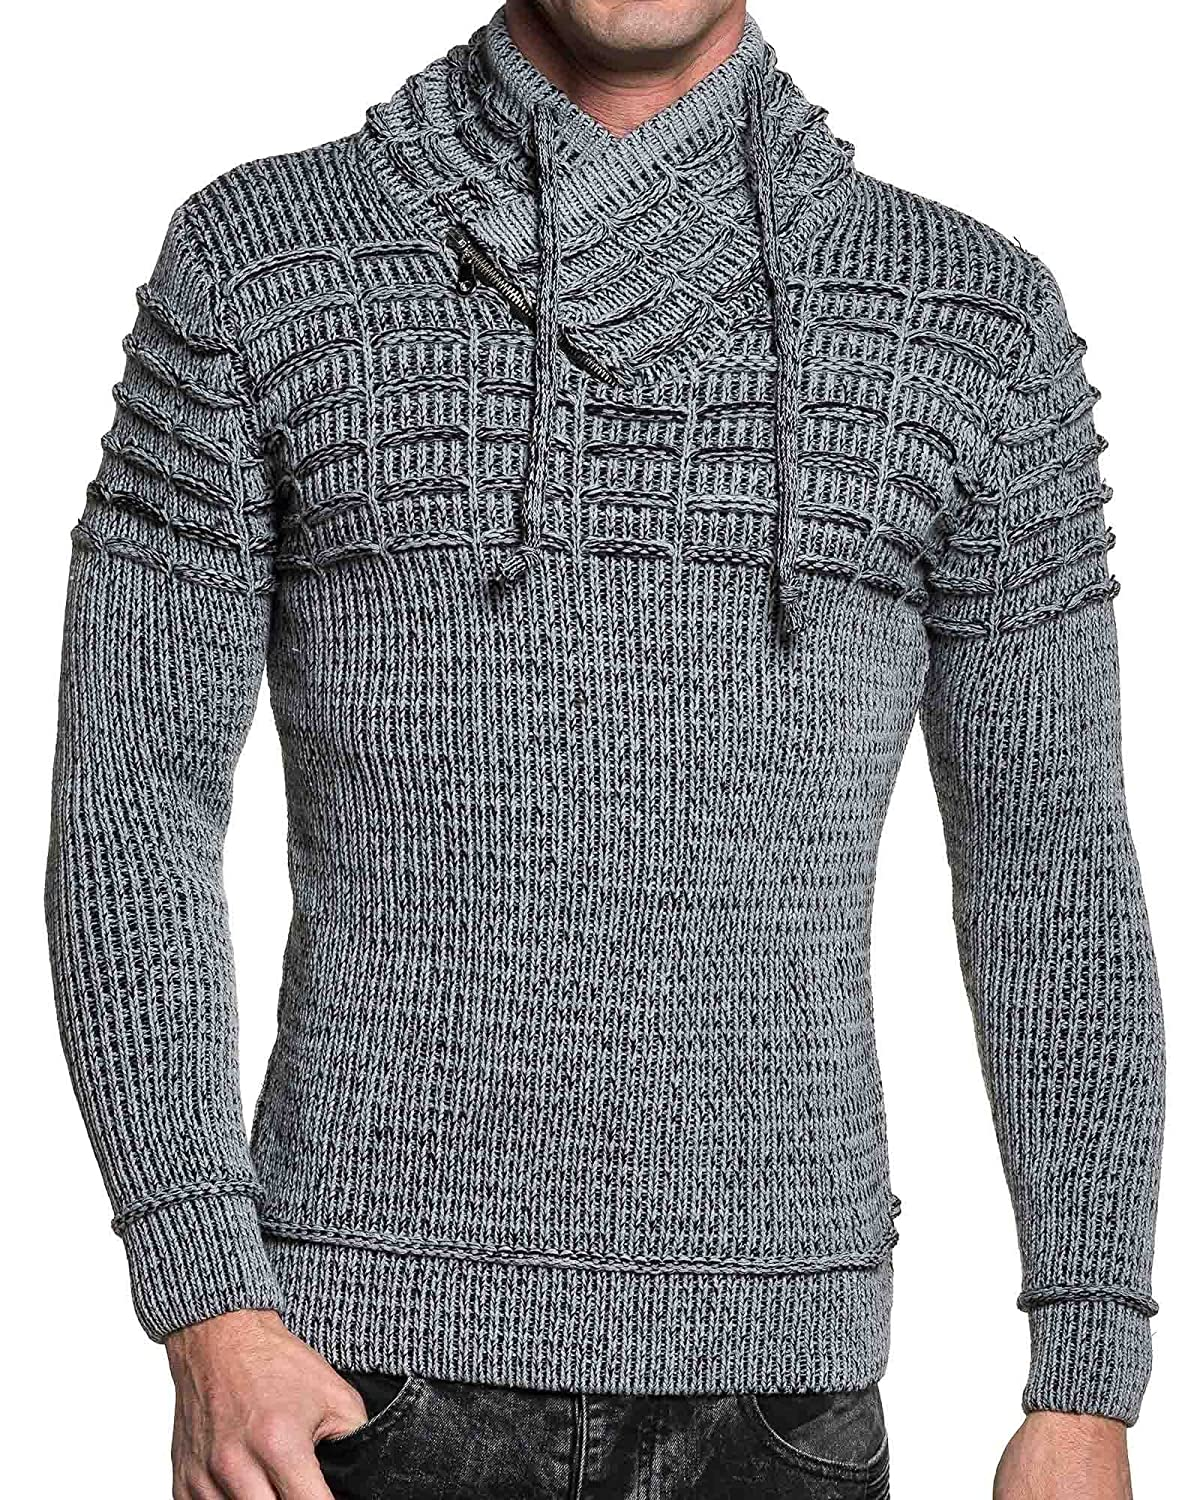 BLZ jeans - gray ribbed sweater and shawl collar black man